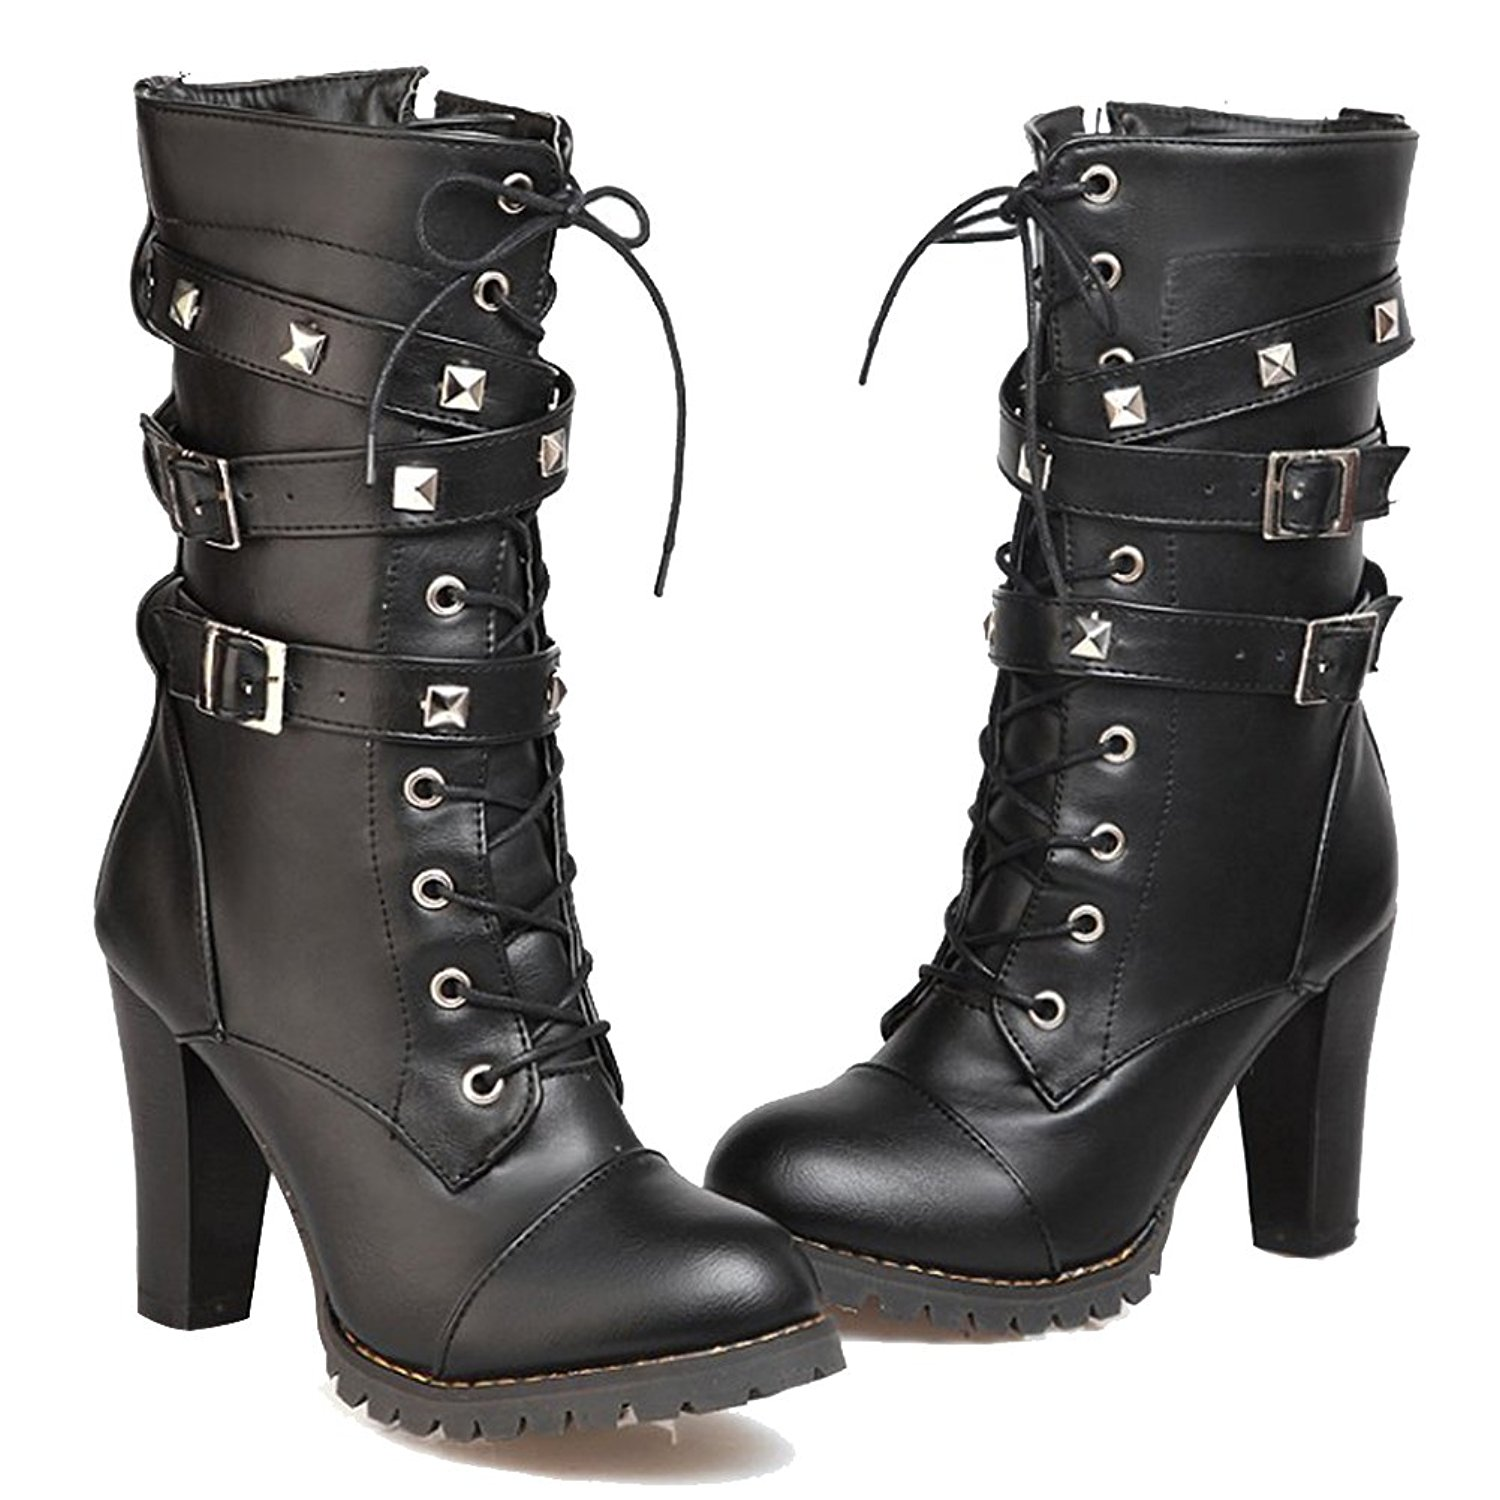 07b33098b333 Get Quotations · HiEase Women s Vintage Rivets Zip Western Boots Lace up  Fashion Biker Boots Buckle Party Dress Calf